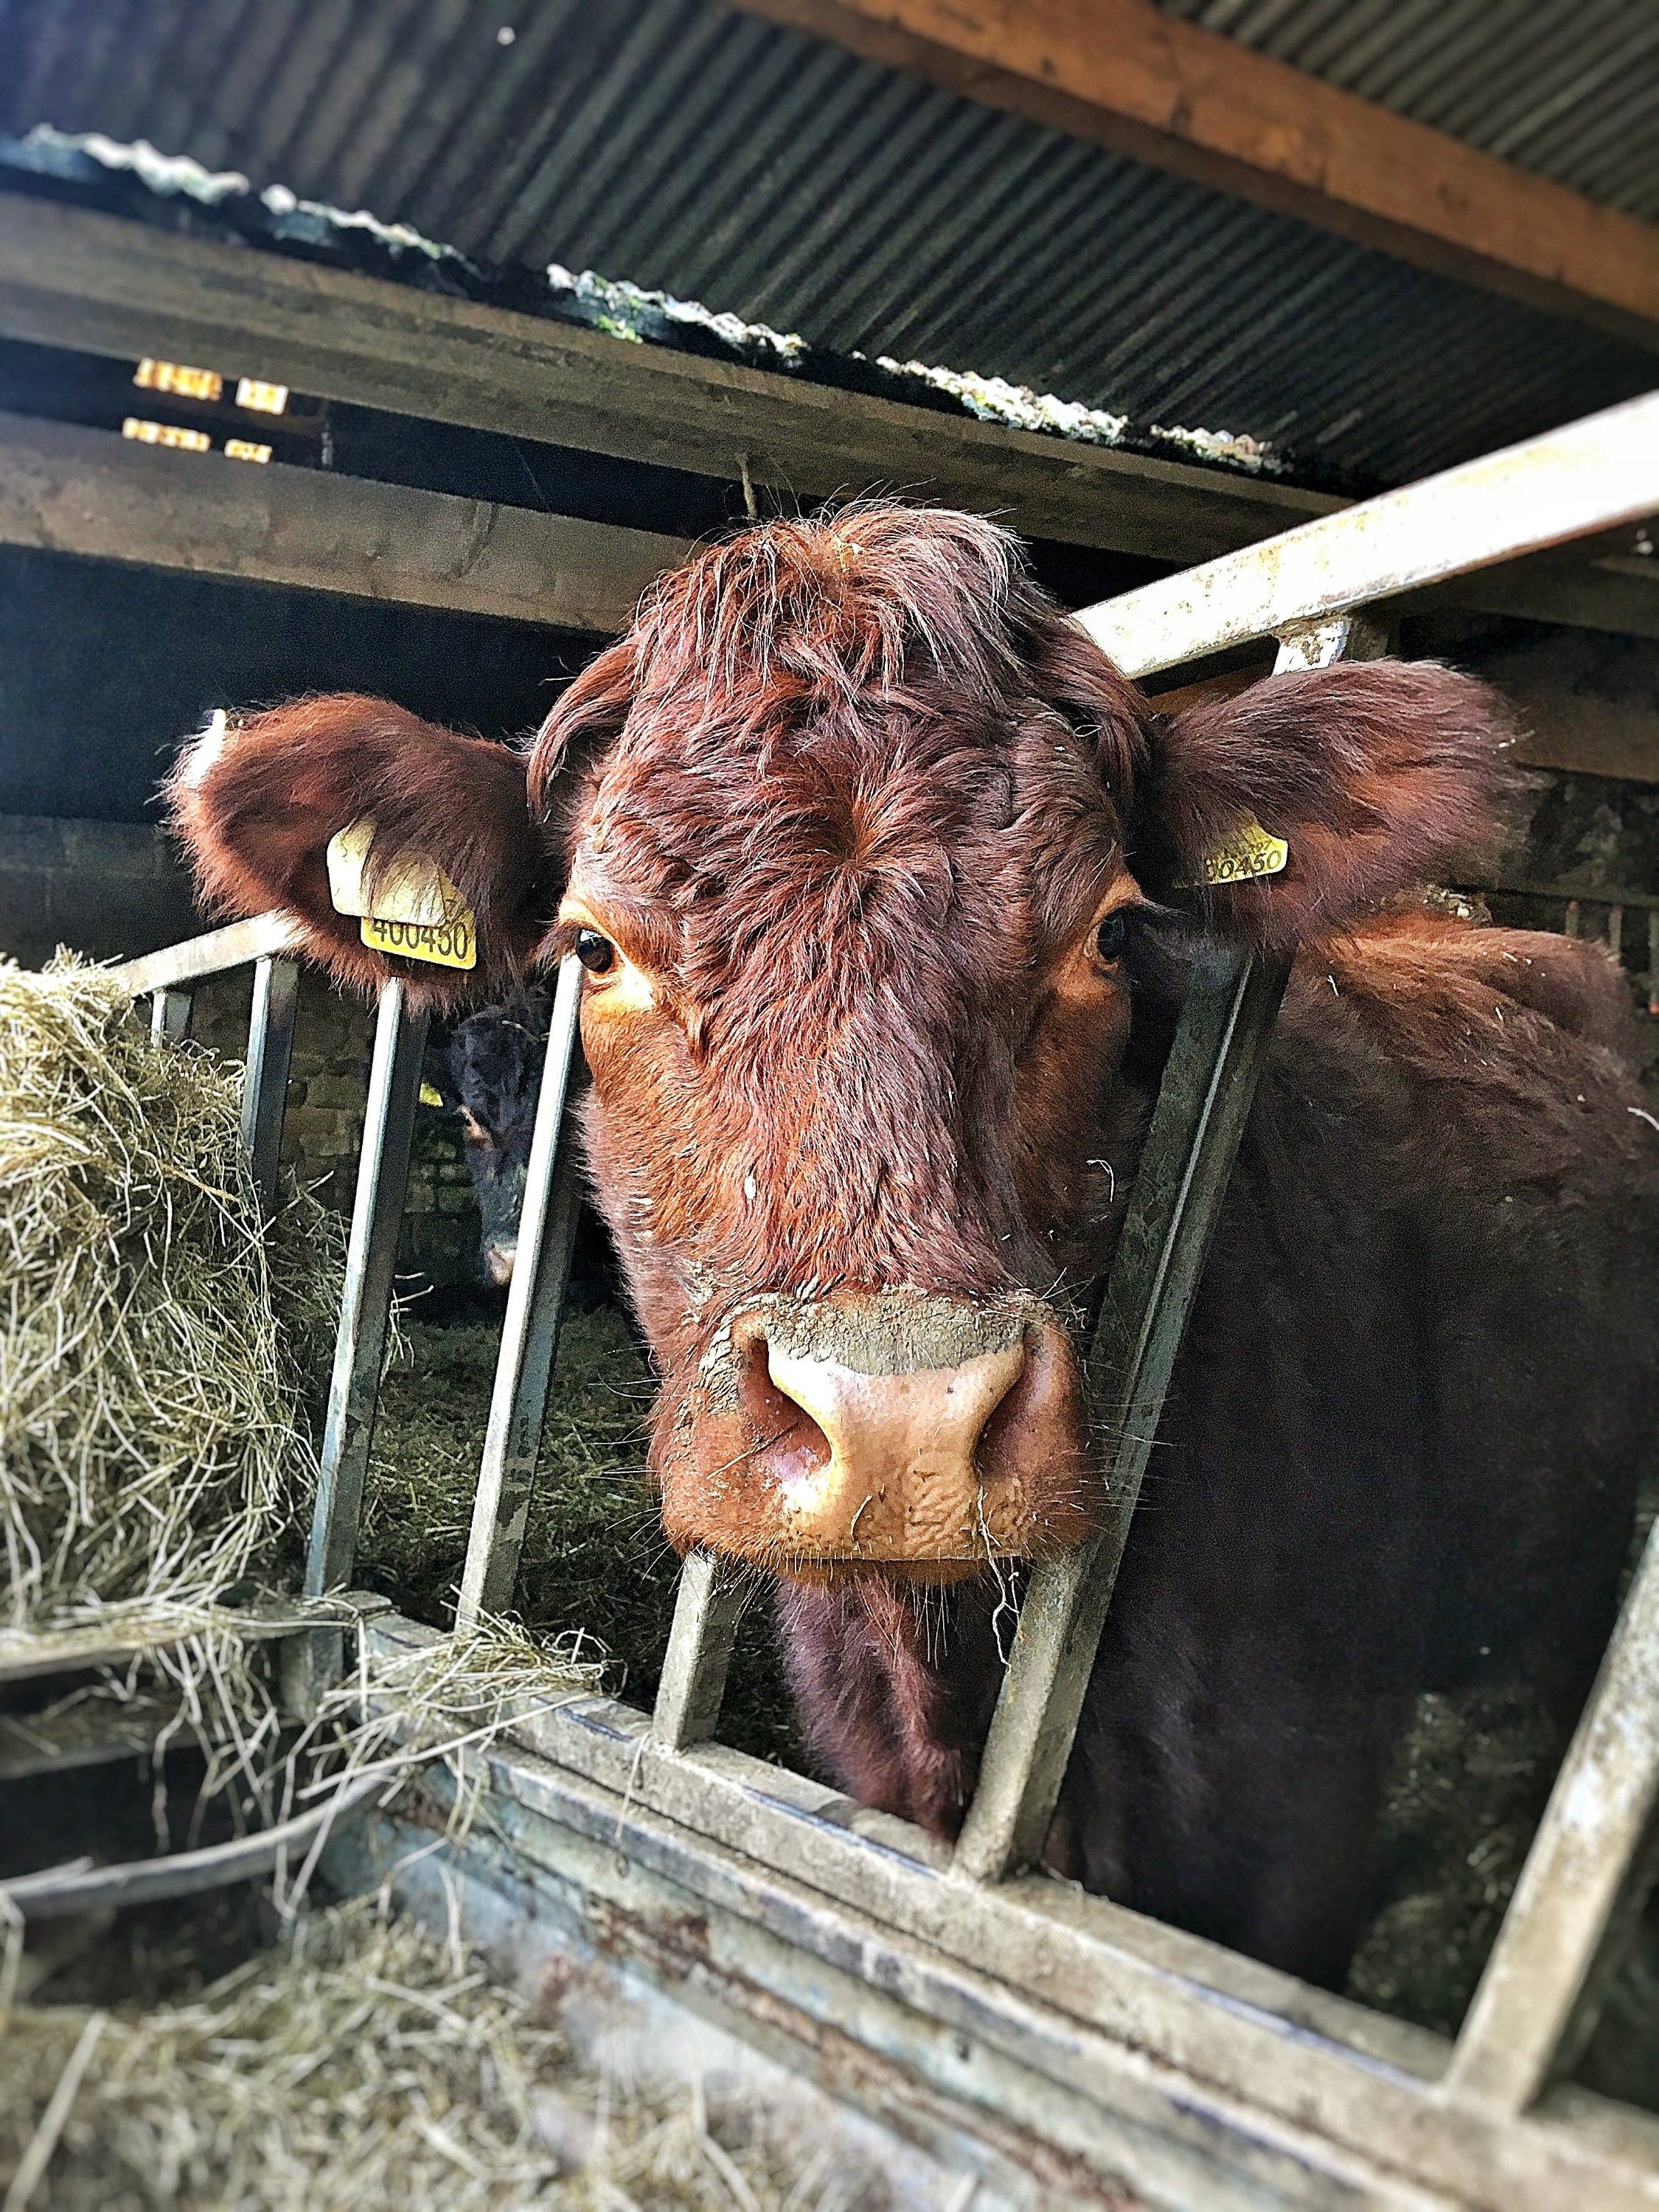 Orange/brown cow looking quizzically through the bars of a feed barrier from inside a shed.